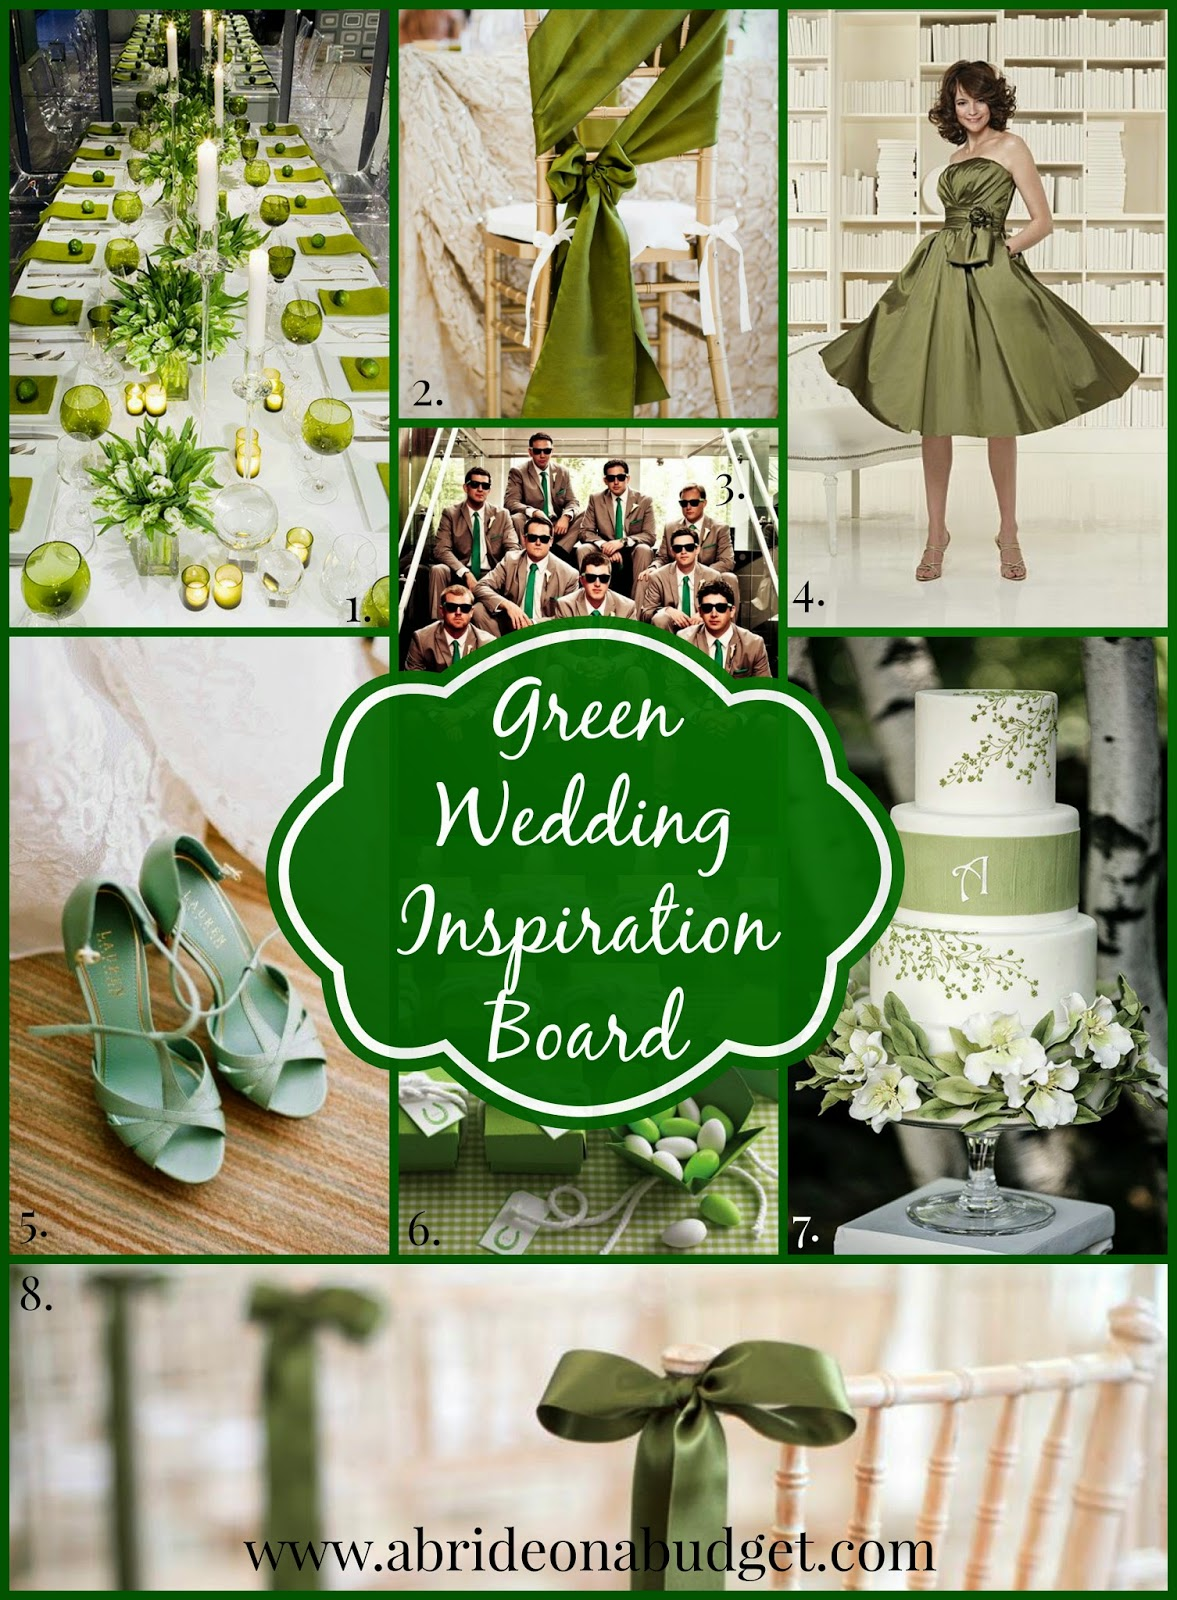 The coming of March always makes me think of green weddings (the color, not eco-friendly). If you've got them on the brain too, you're in luck. Check out the great green wedding inspiration board on www.abrideonabudget.com.